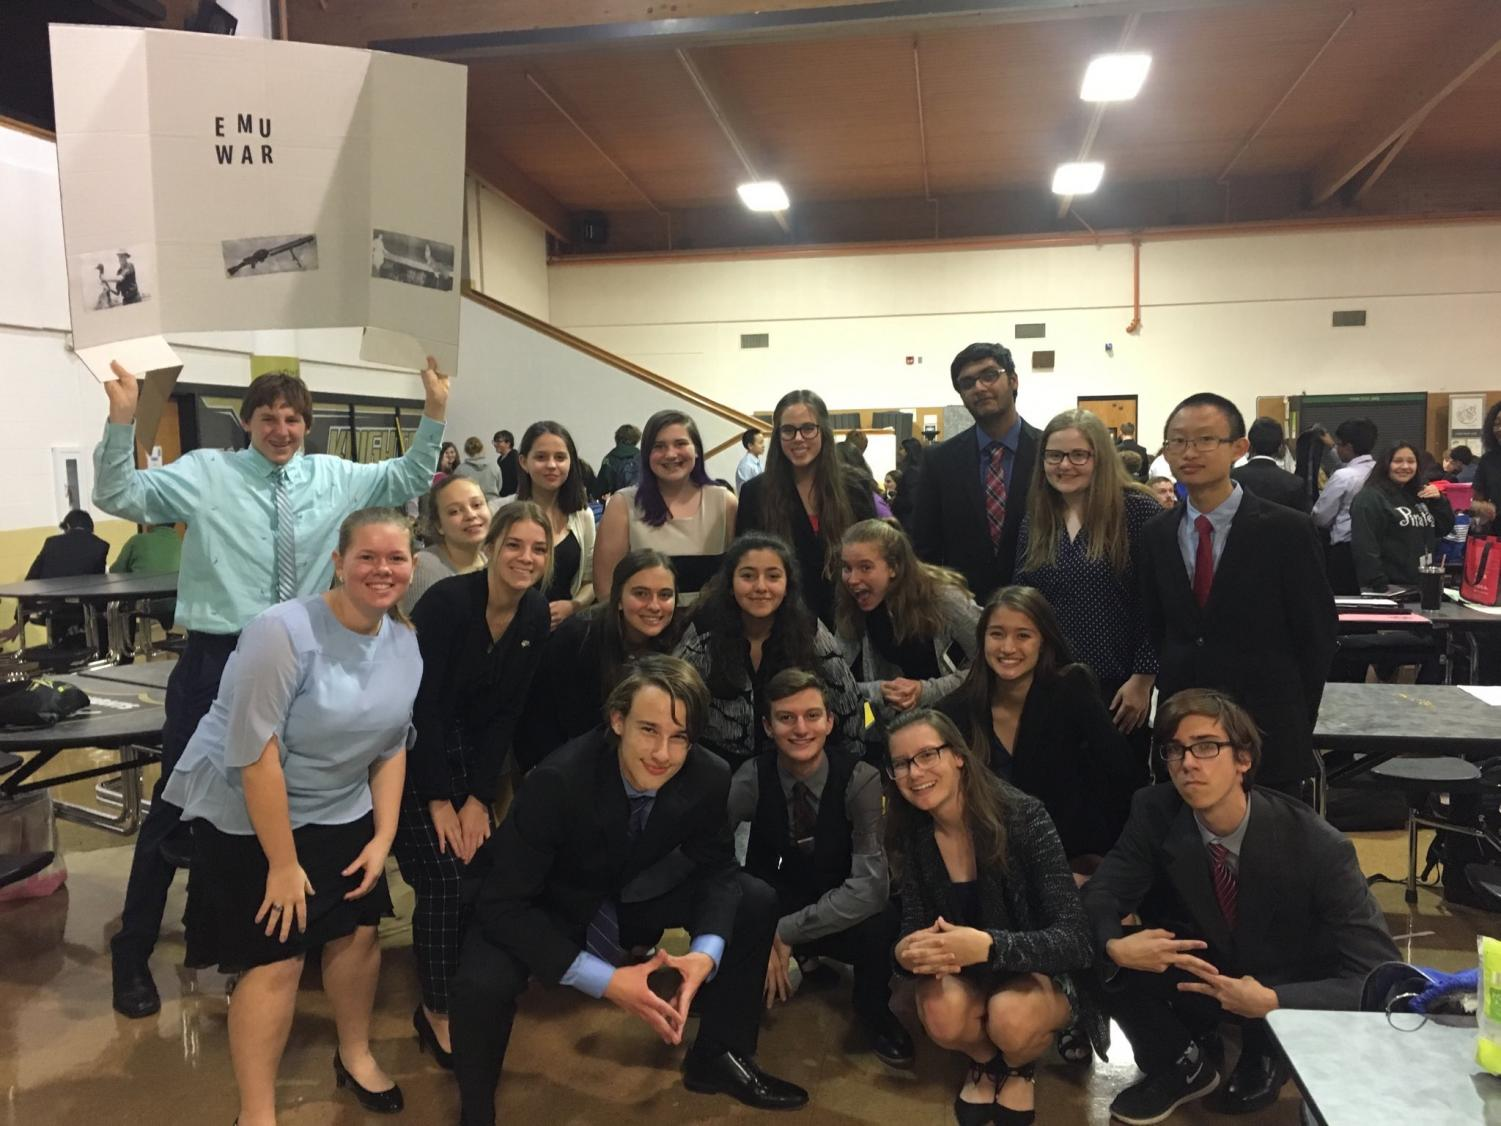 The speech and Debate team poses for pictures after a tournament